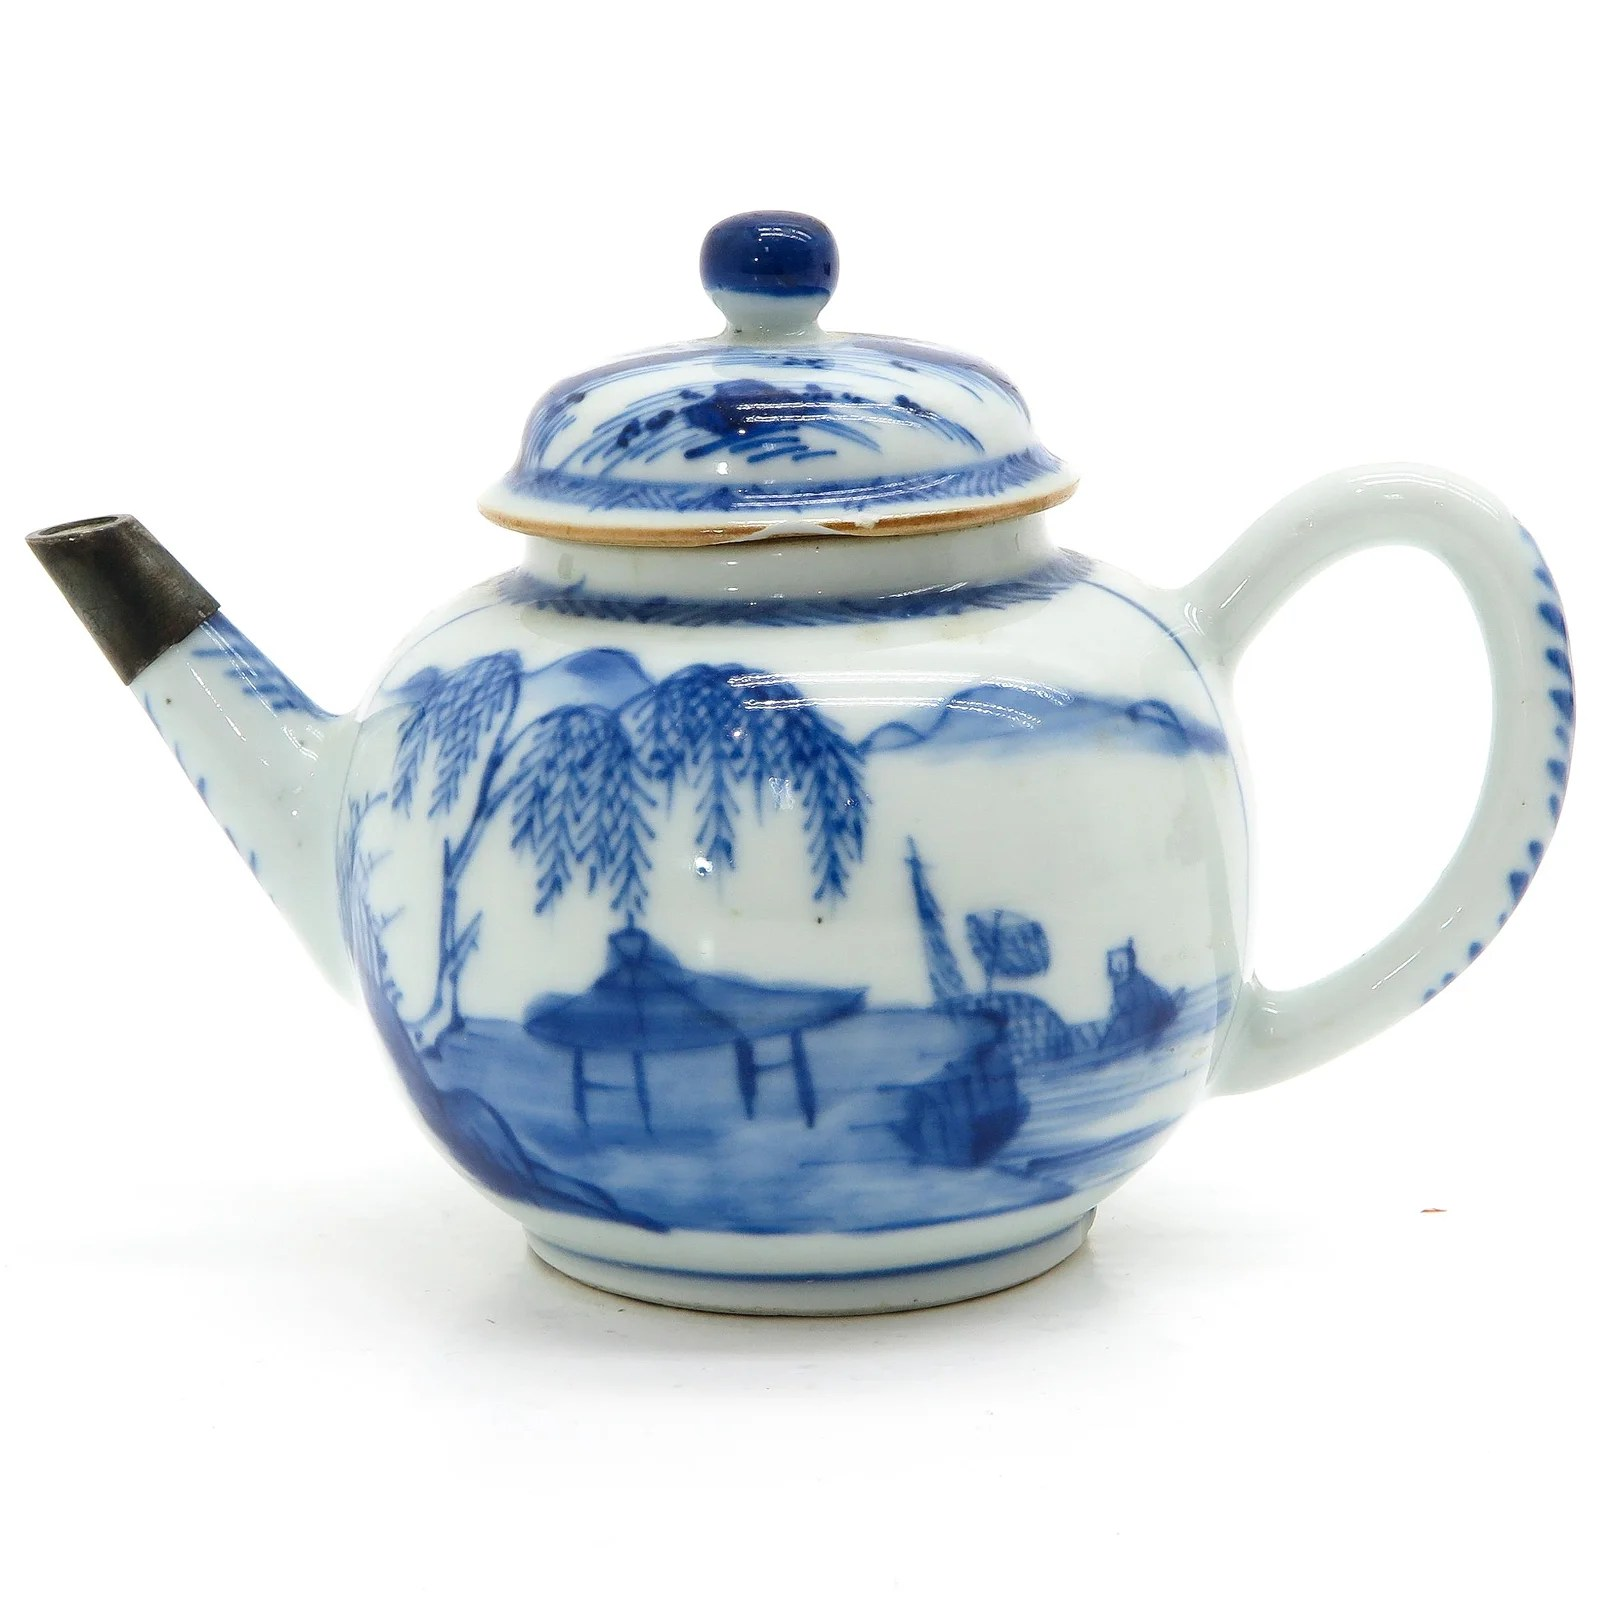 A Chinese Teapot